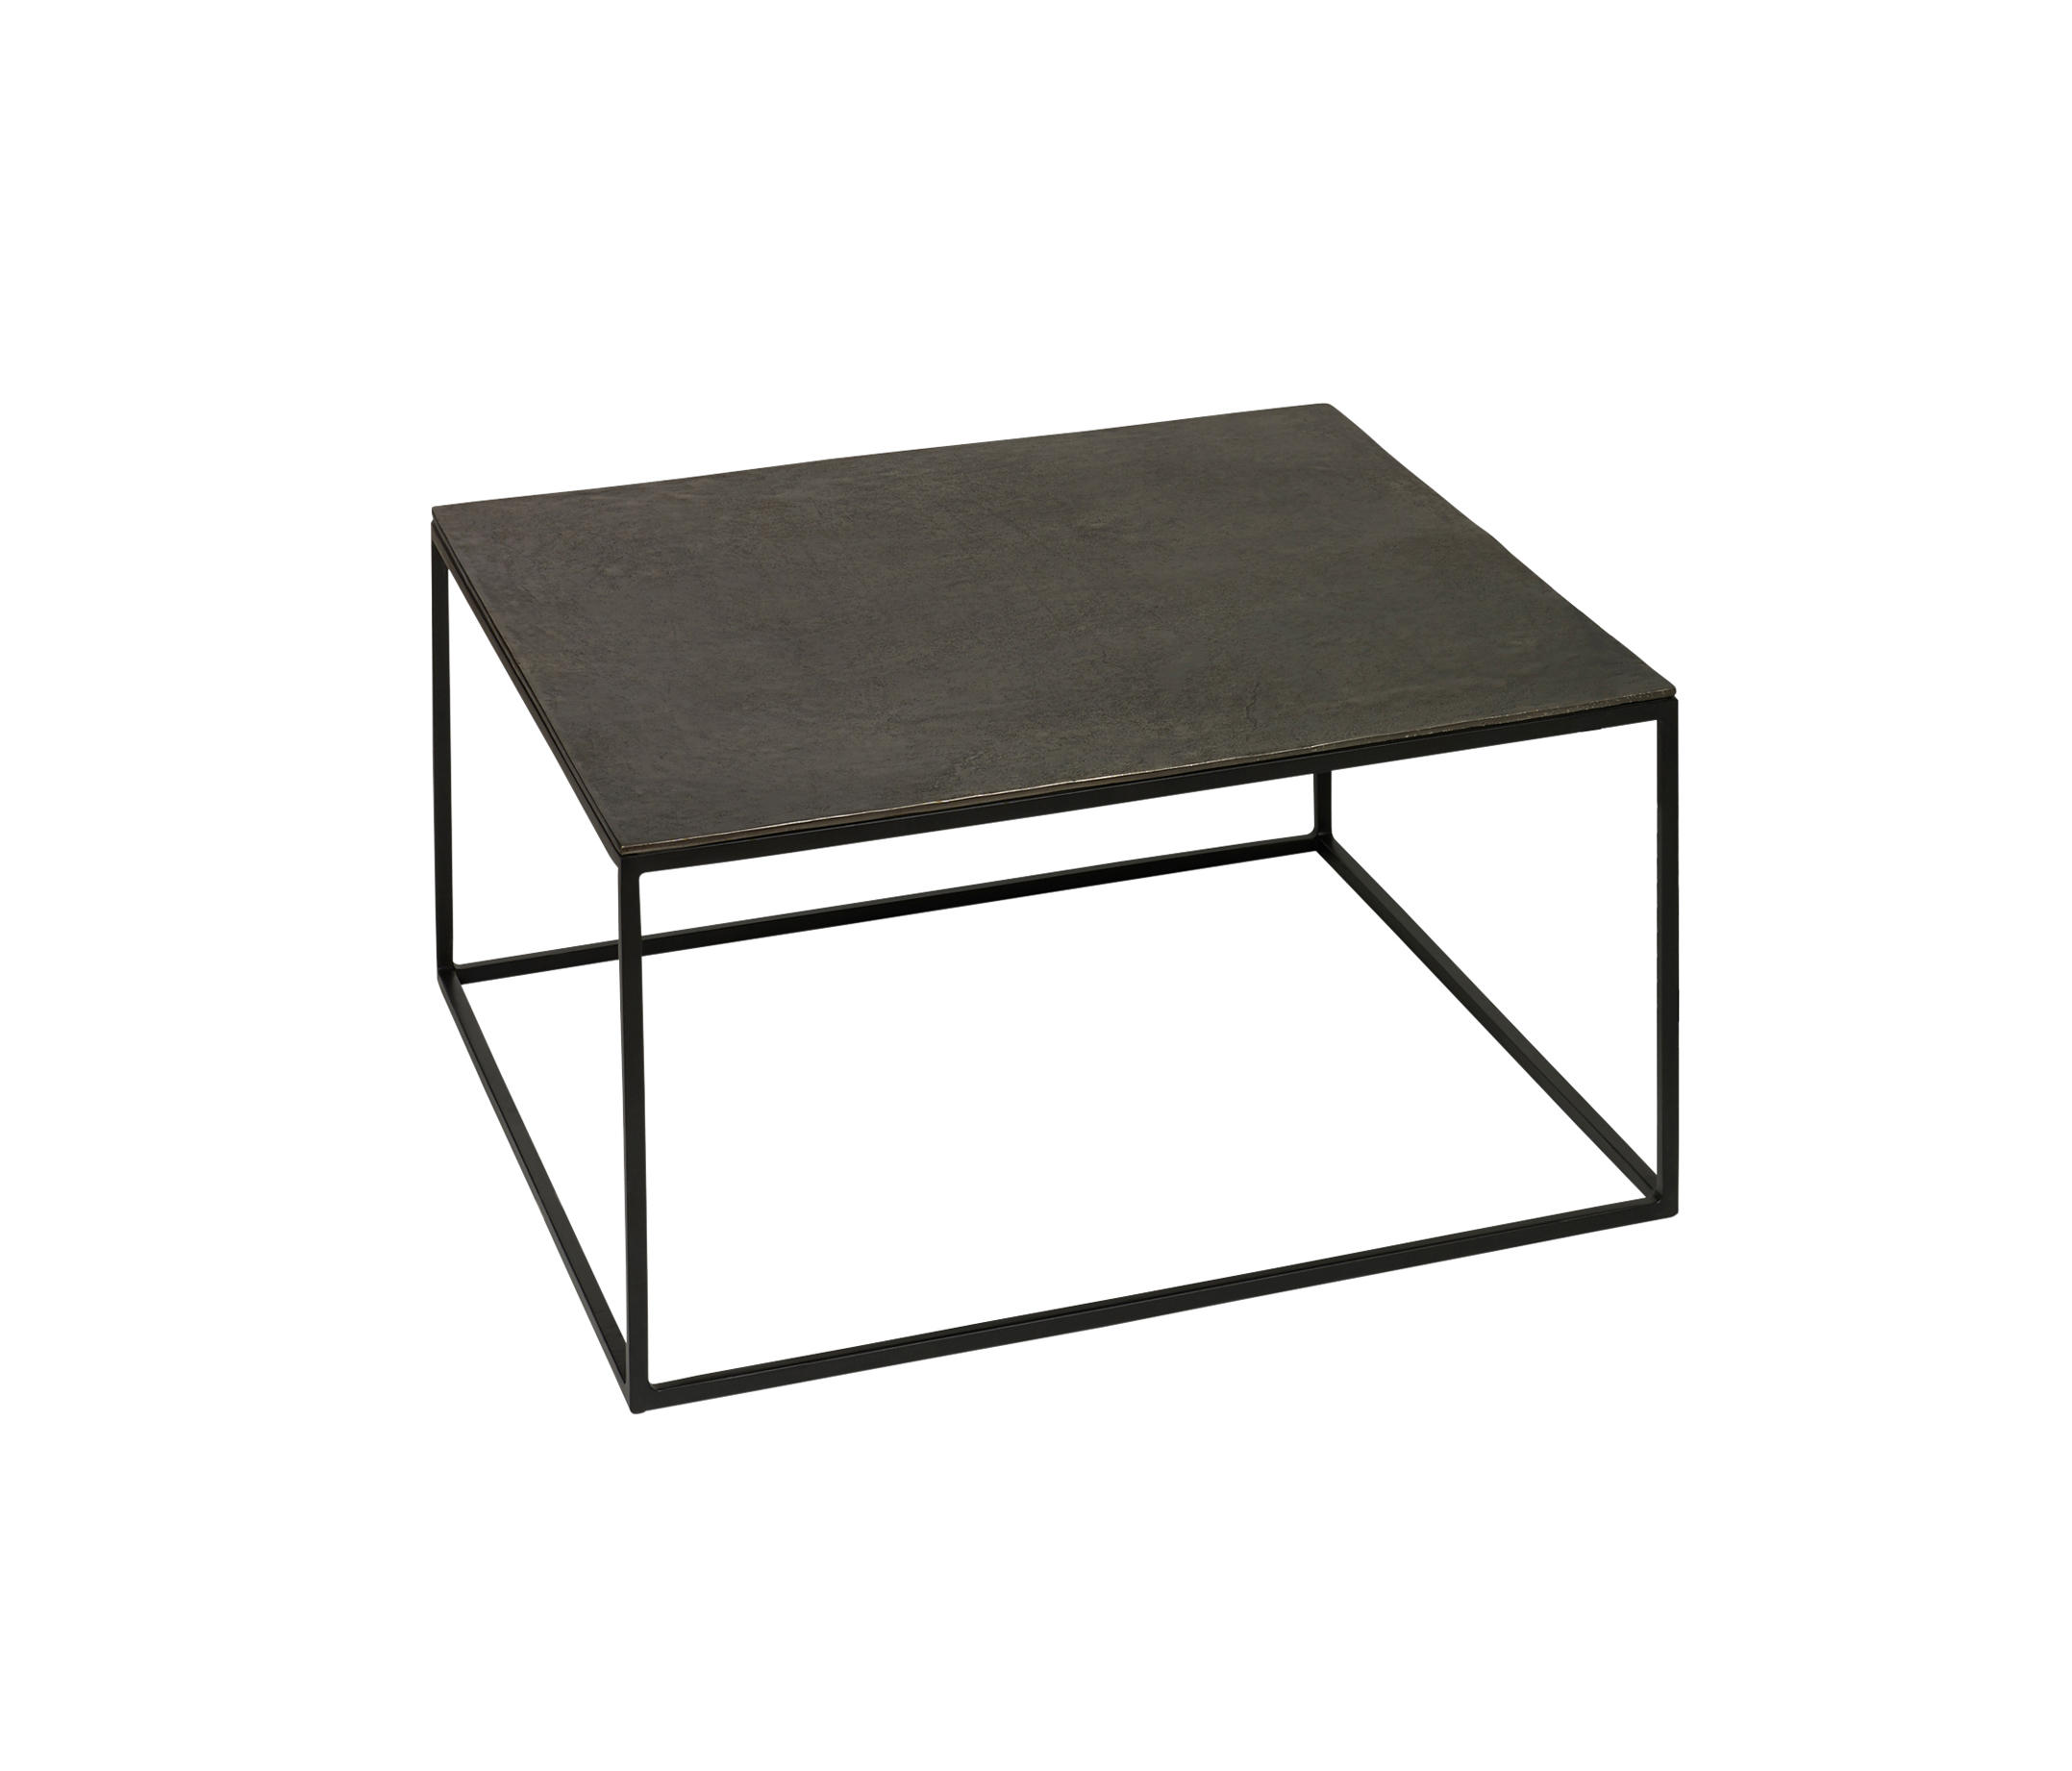 miyu side table - tables d'appoint de lambert | architonic